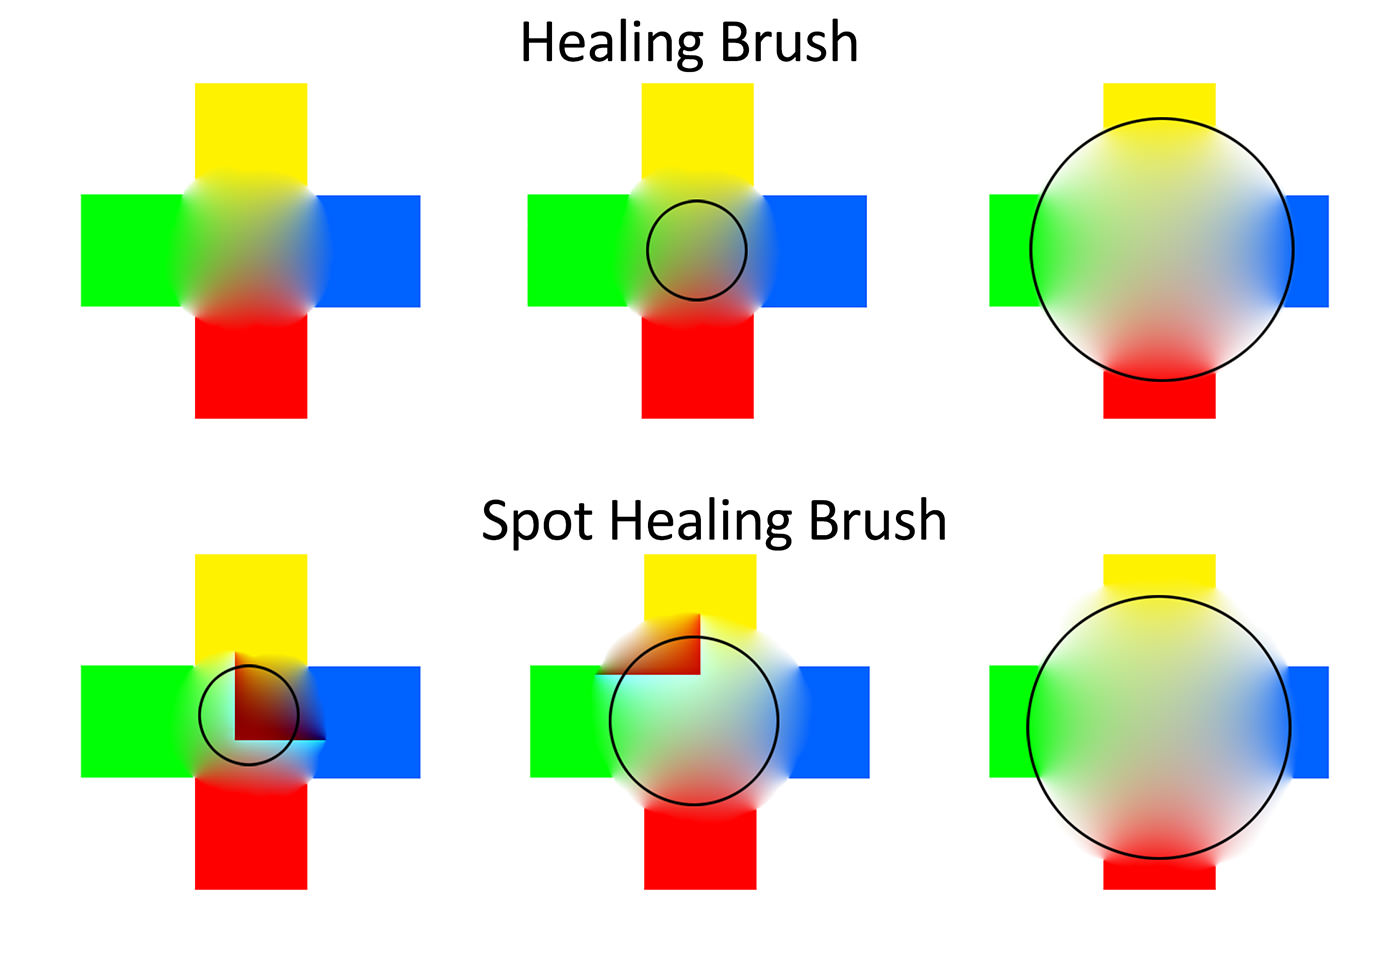 what spot healing brush photoshop does